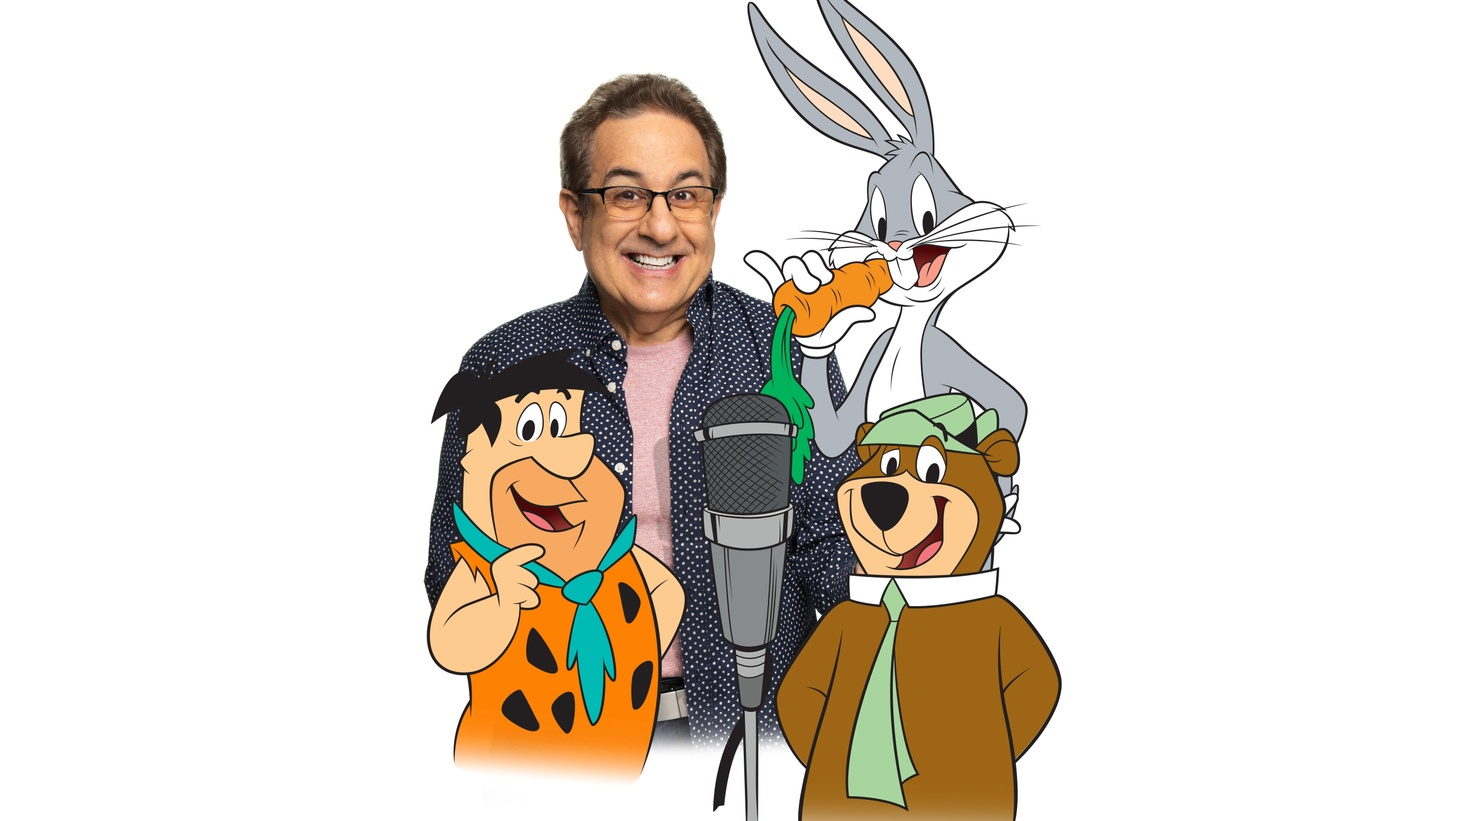 Voice actor Jeff Bergman with a few of his alter egos: Fred Flintstone, Bugs Bunny and Yogi Bear.